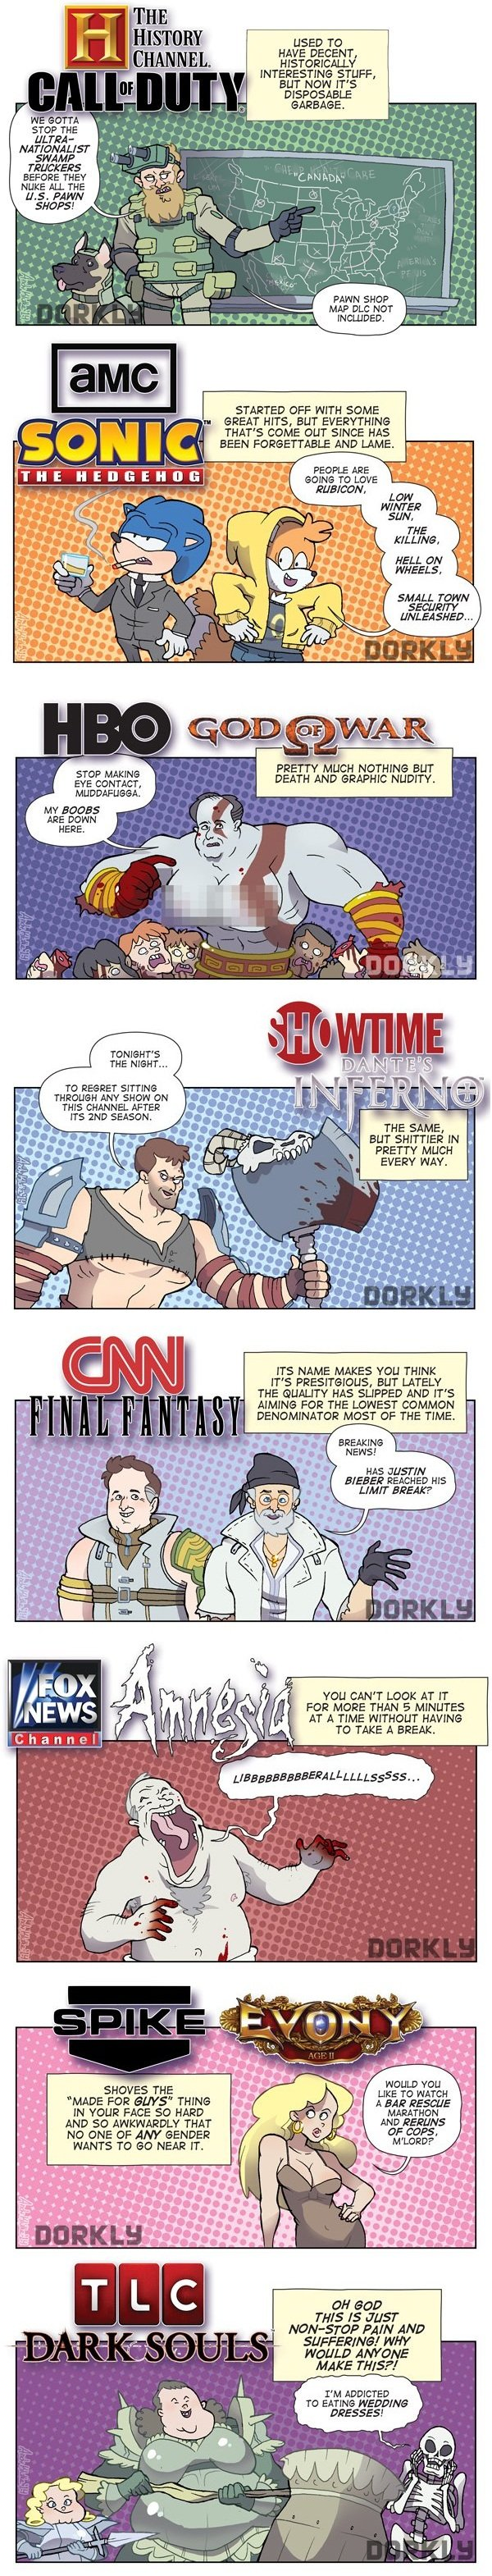 TV channels as video games.. Source: Dorkly.. USED TO HAVE DECENT, Al. LY INTERESTING STUFF, BUT NON IT' S M - GARBAGE. STOP THE l; Ileana, tale - BEFC-' RE THE